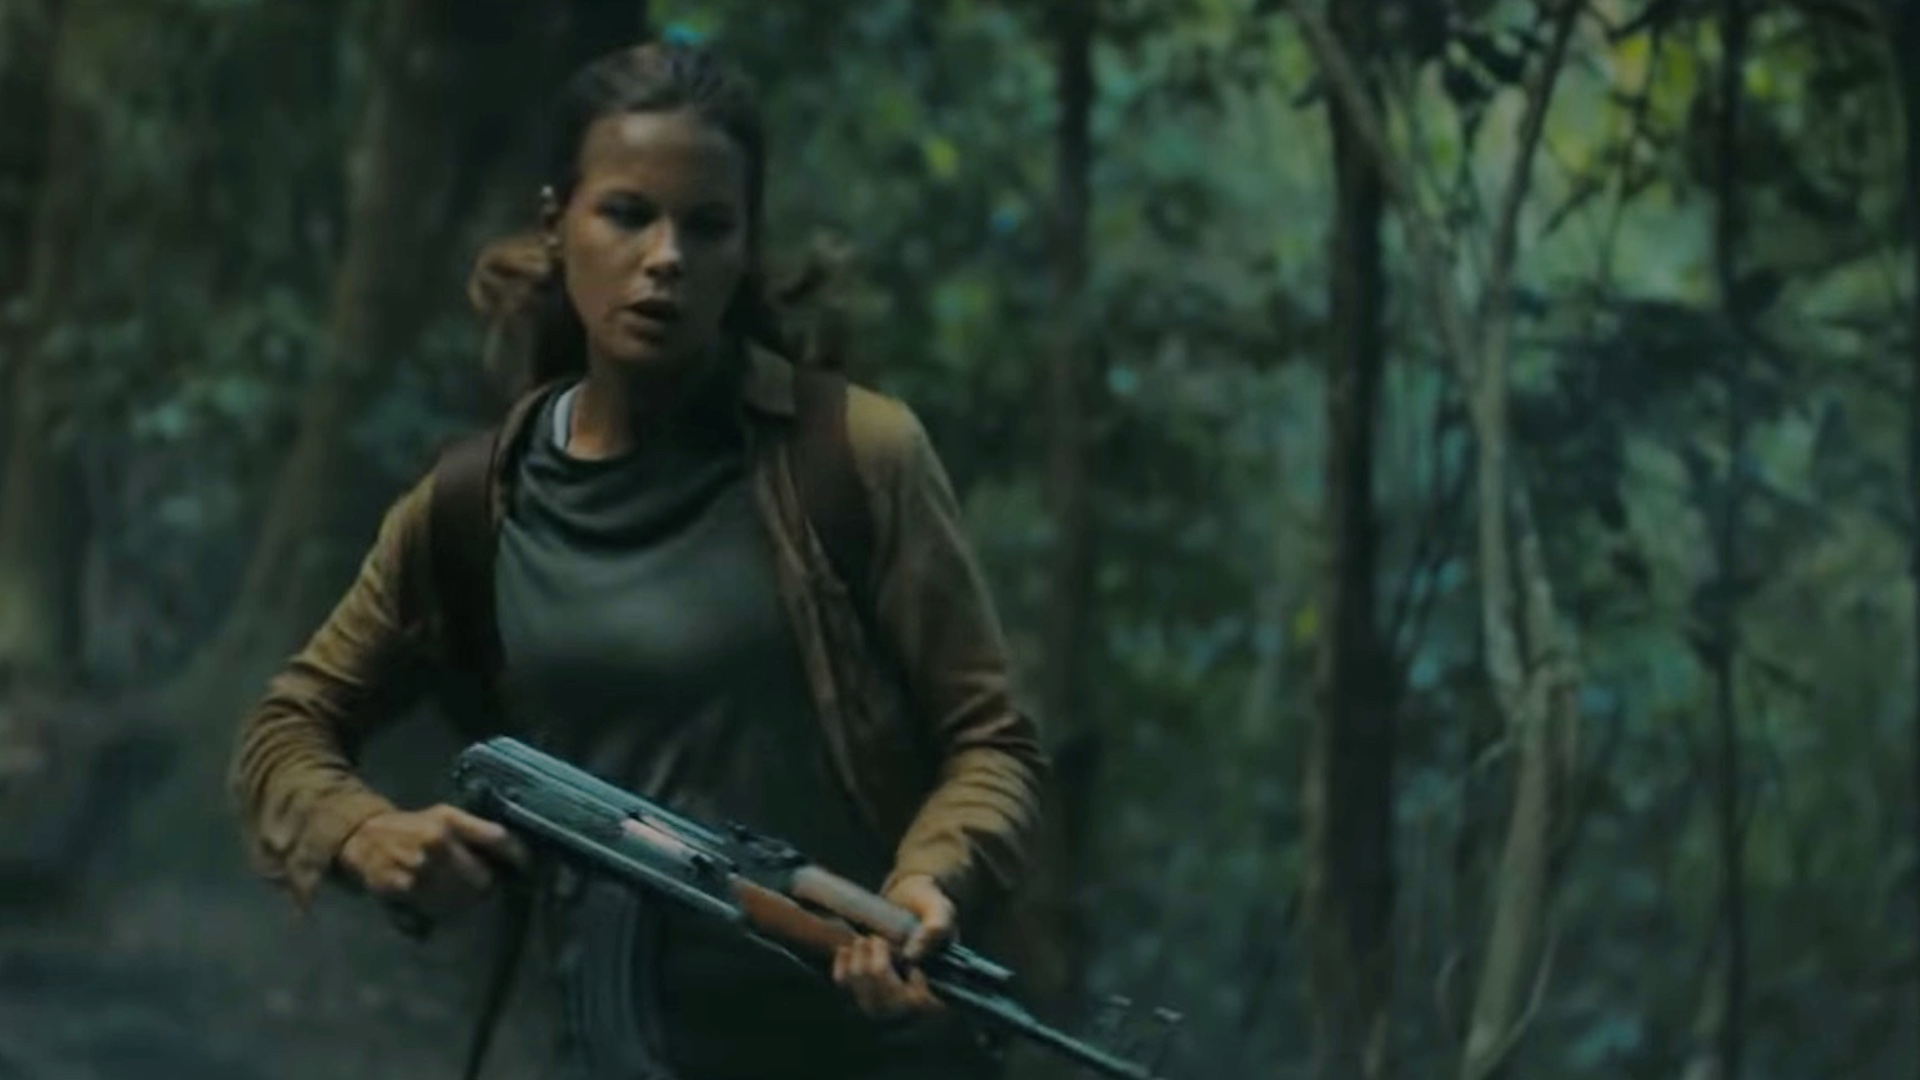 Kate Beckinsale in The Widow S1 op Amazon Prime Video